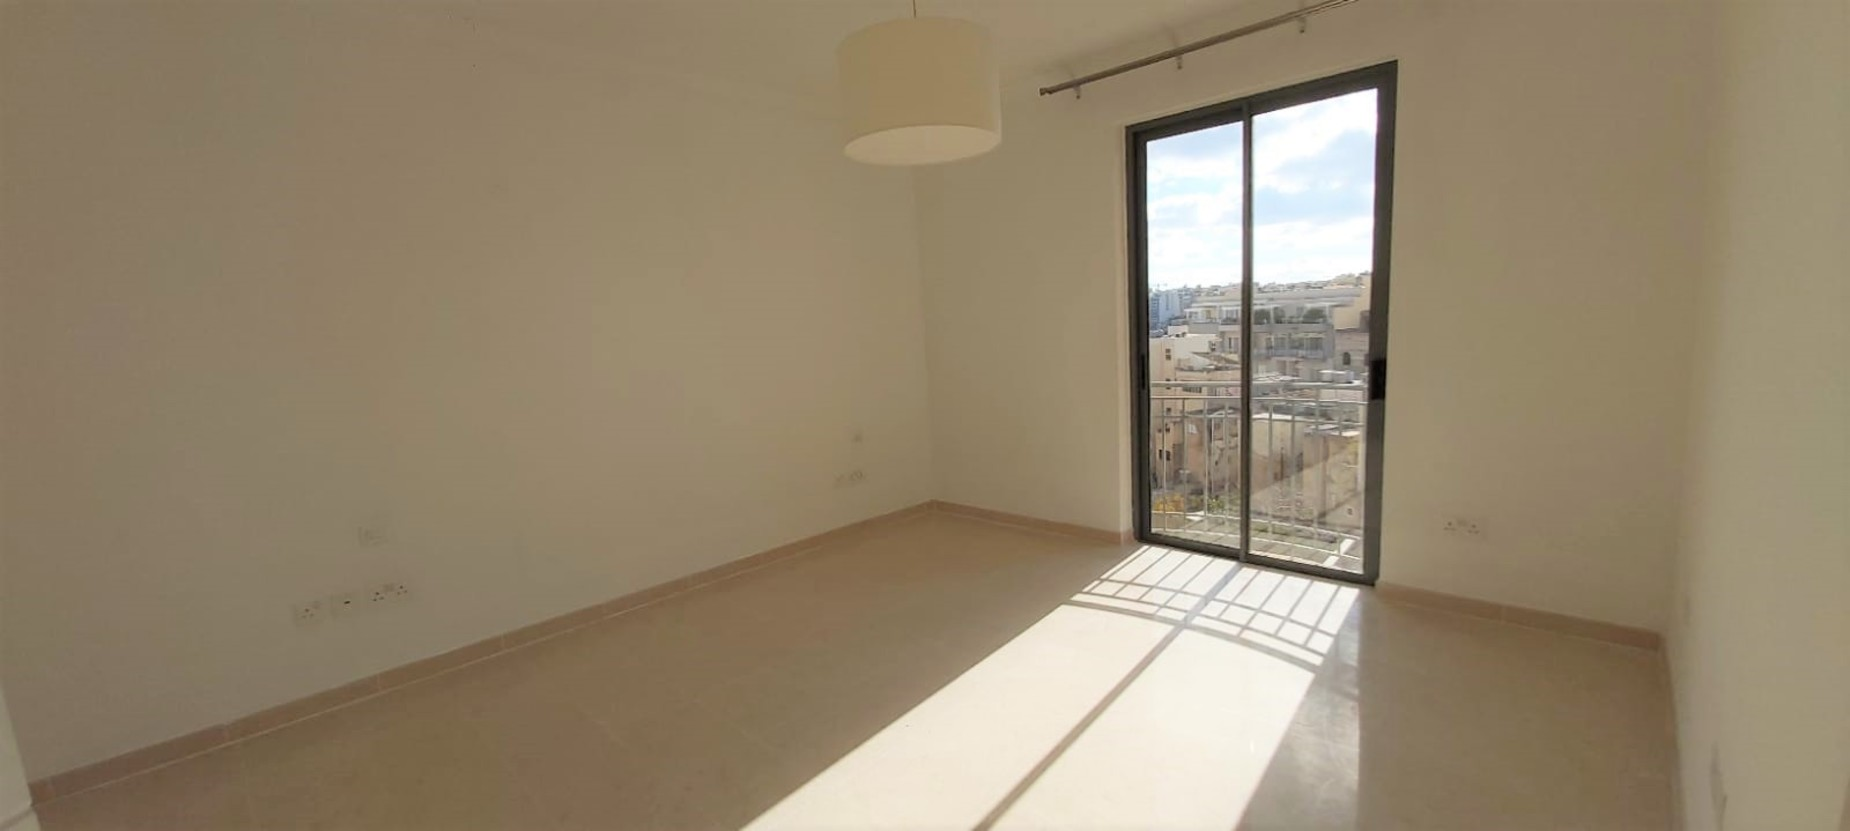 3 bed Apartment For Sale in St Julians,  - thumb 8